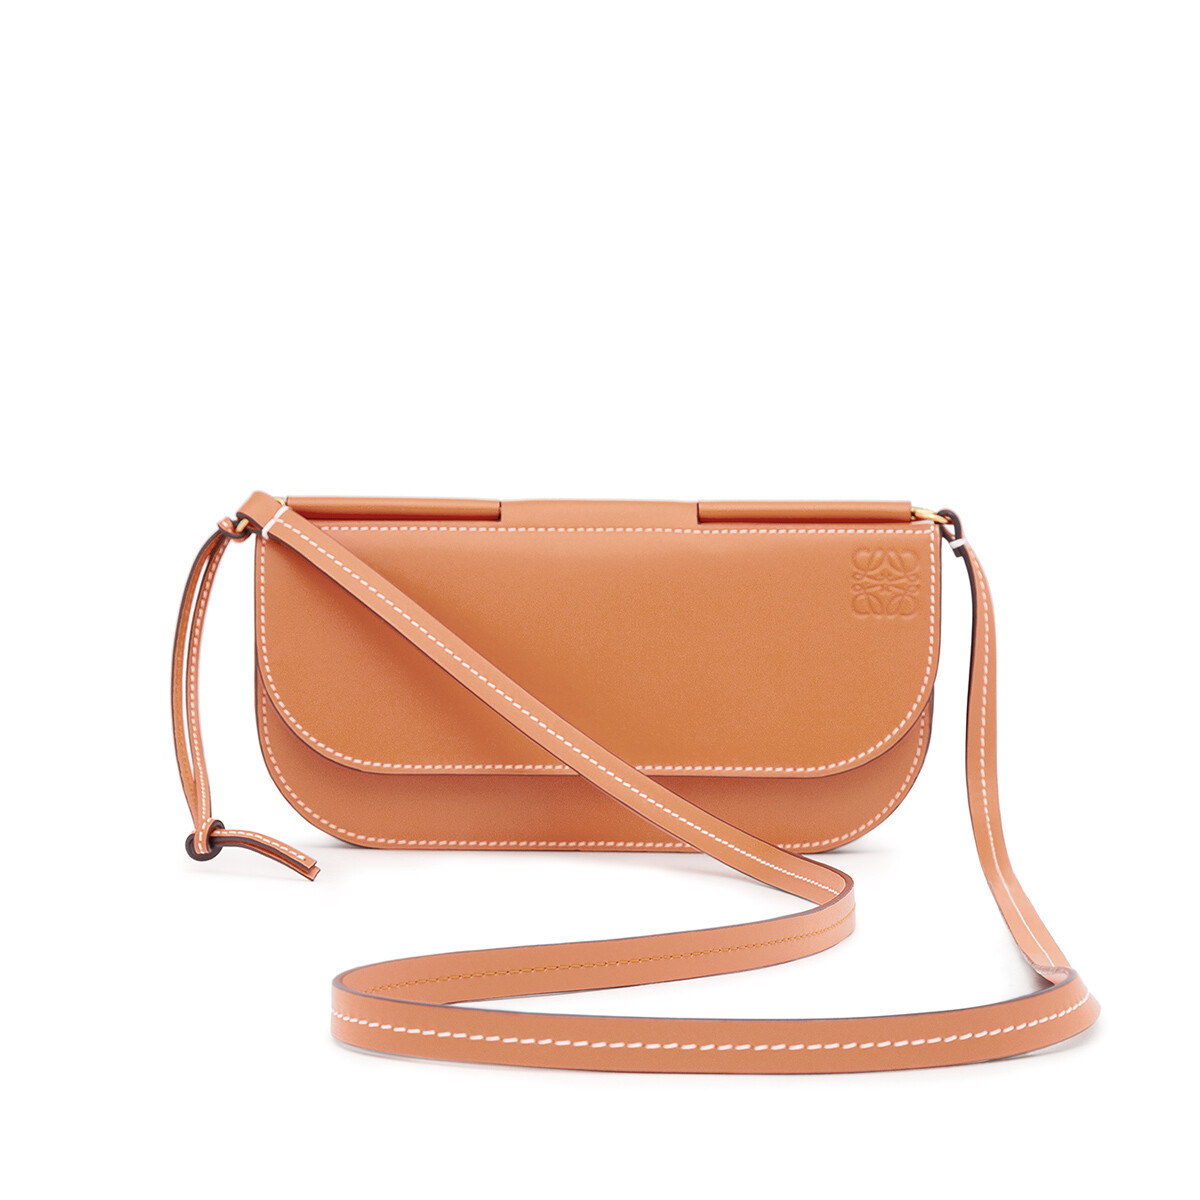 LOEWE Gate Pochette Light Caramel/Oxblood front